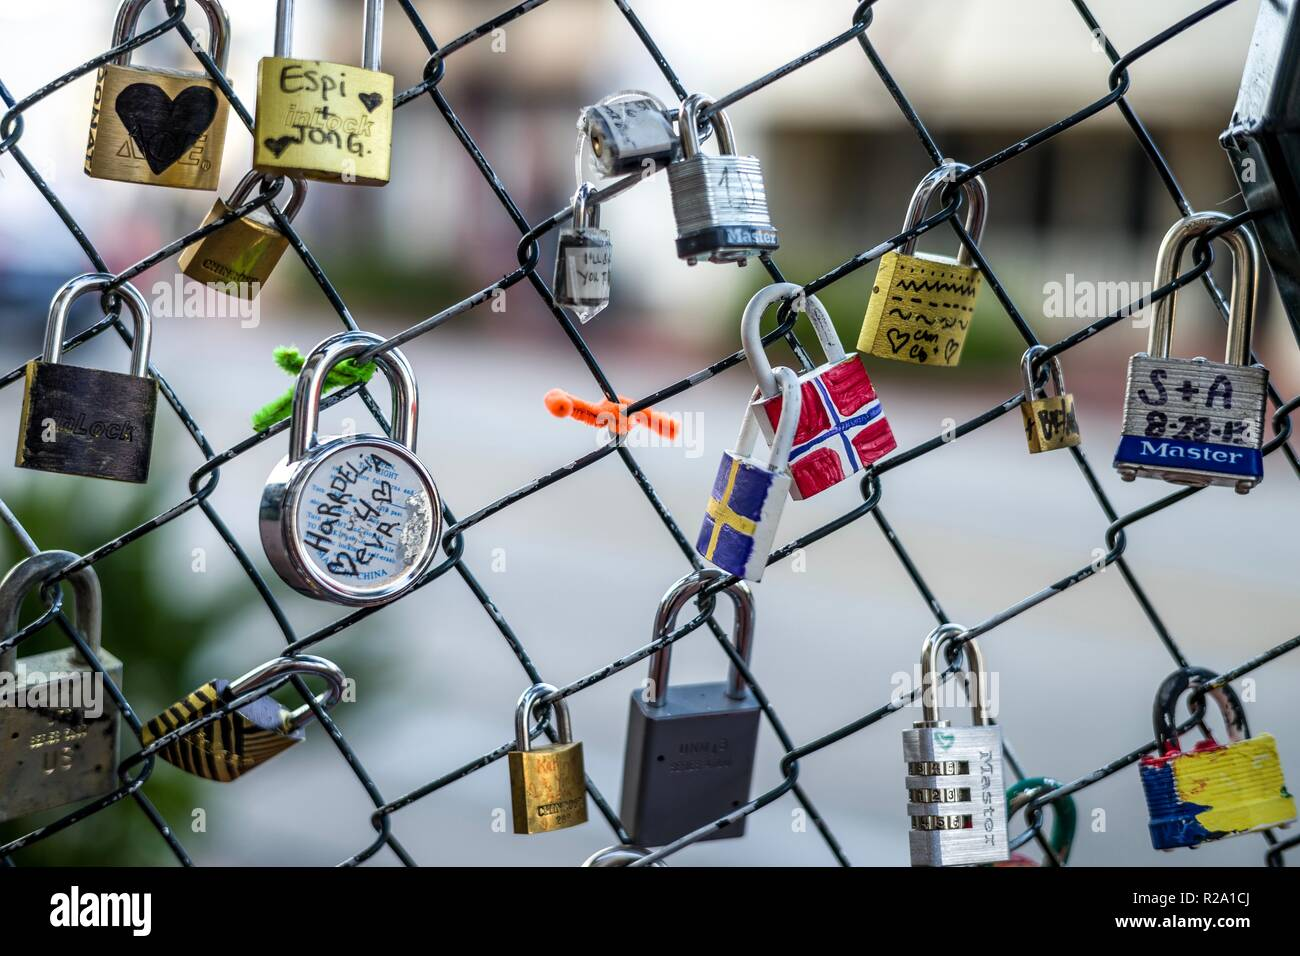 Locks hanging on a fence help to collect memories of times past. - Stock Image